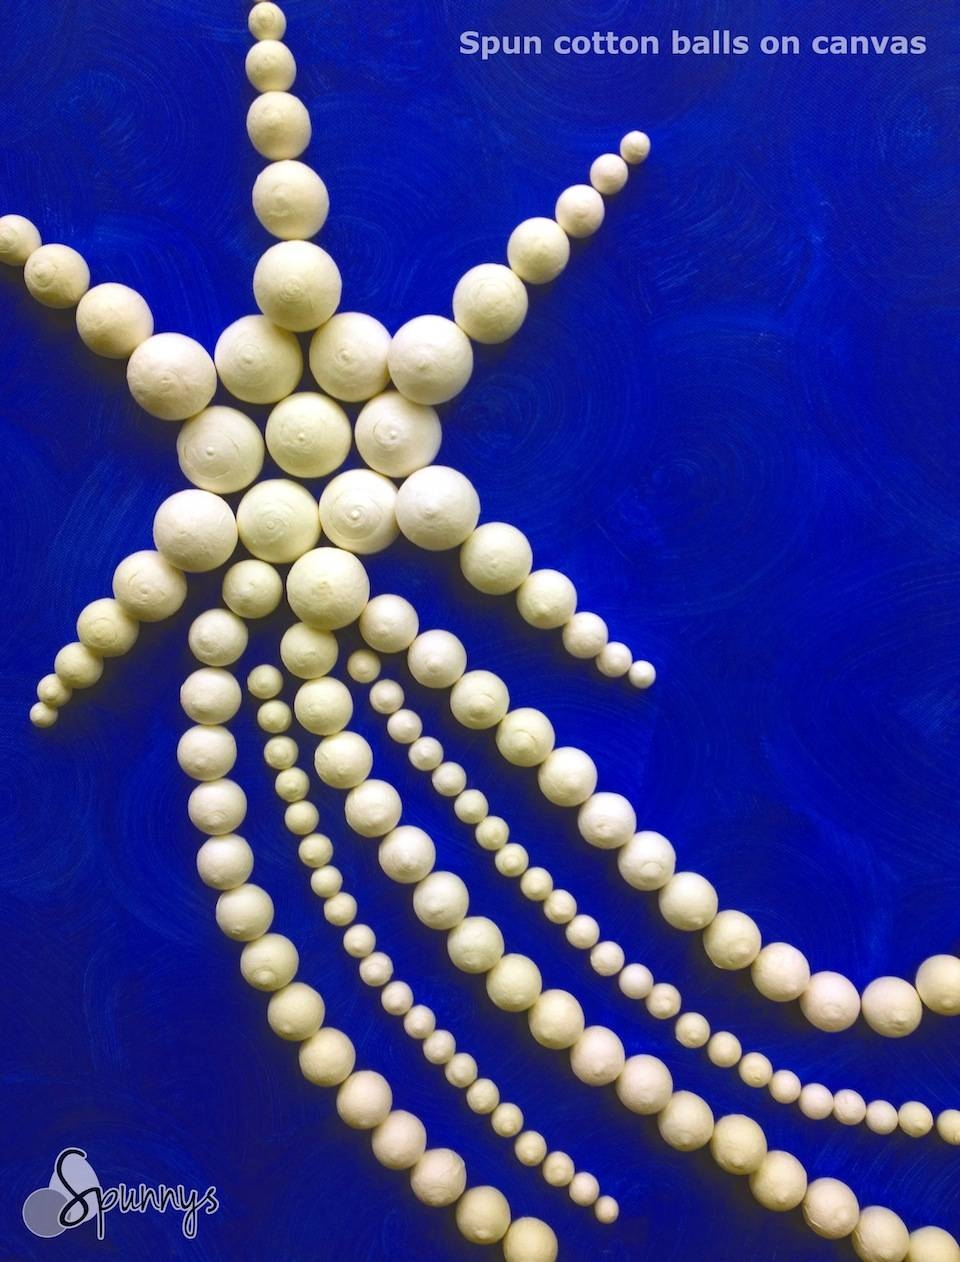 3D Wall Decor Ideas: Create Art With Spun Cotton Balls In Recent Gemstone Wall Art (View 1 of 31)